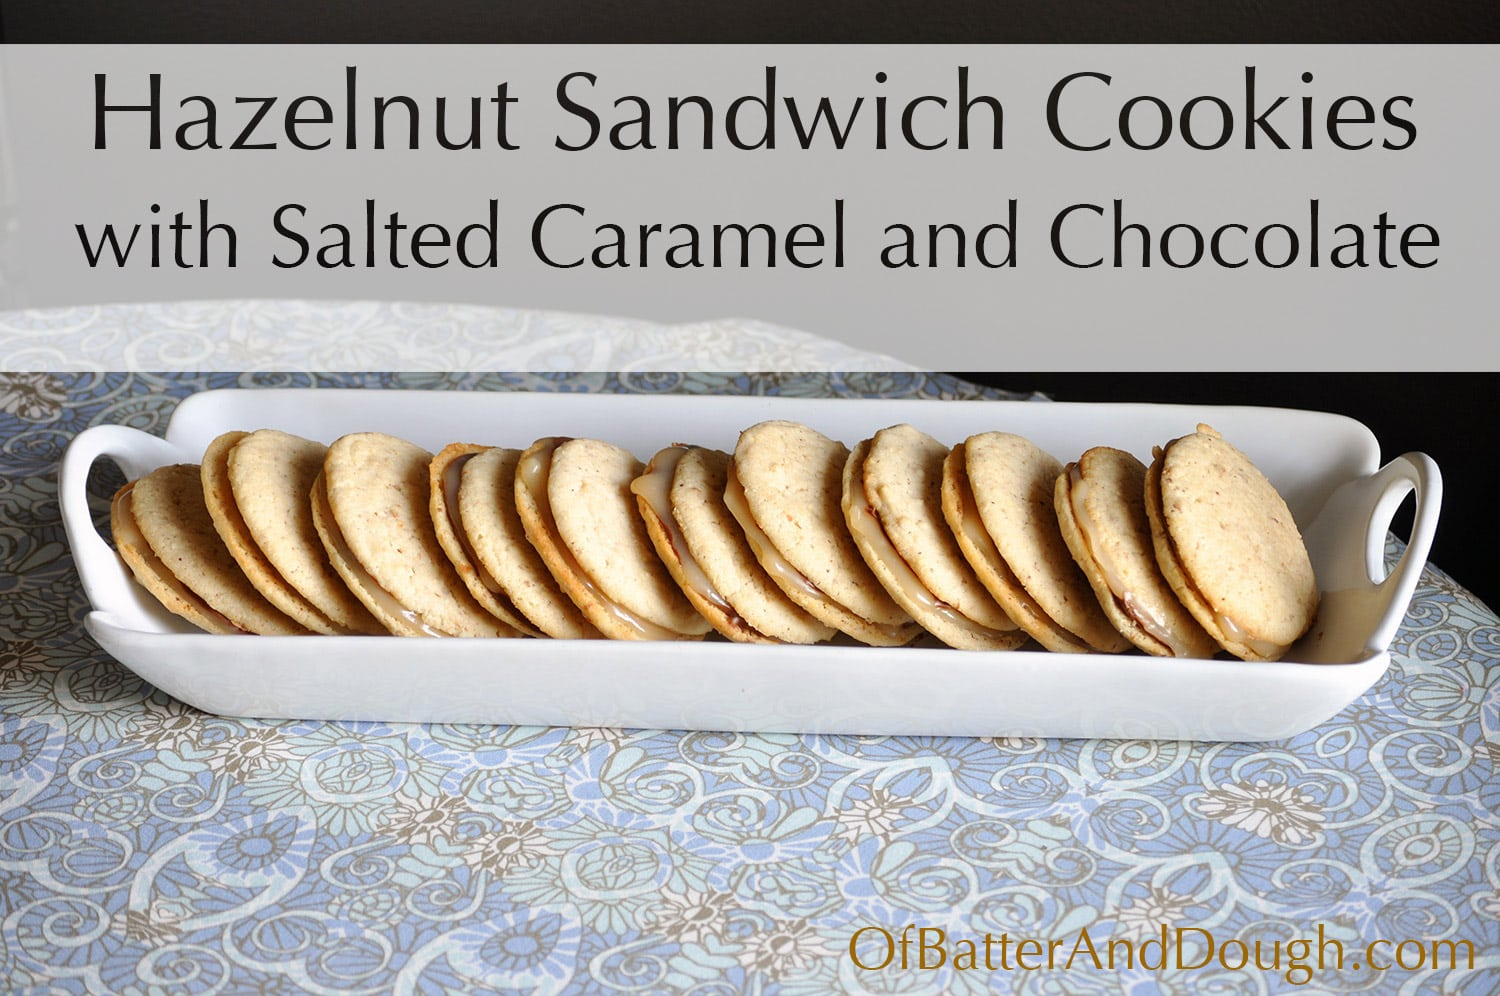 Hazelnut Sandwich Cookies Filled with Salted Caramel and Chocolate